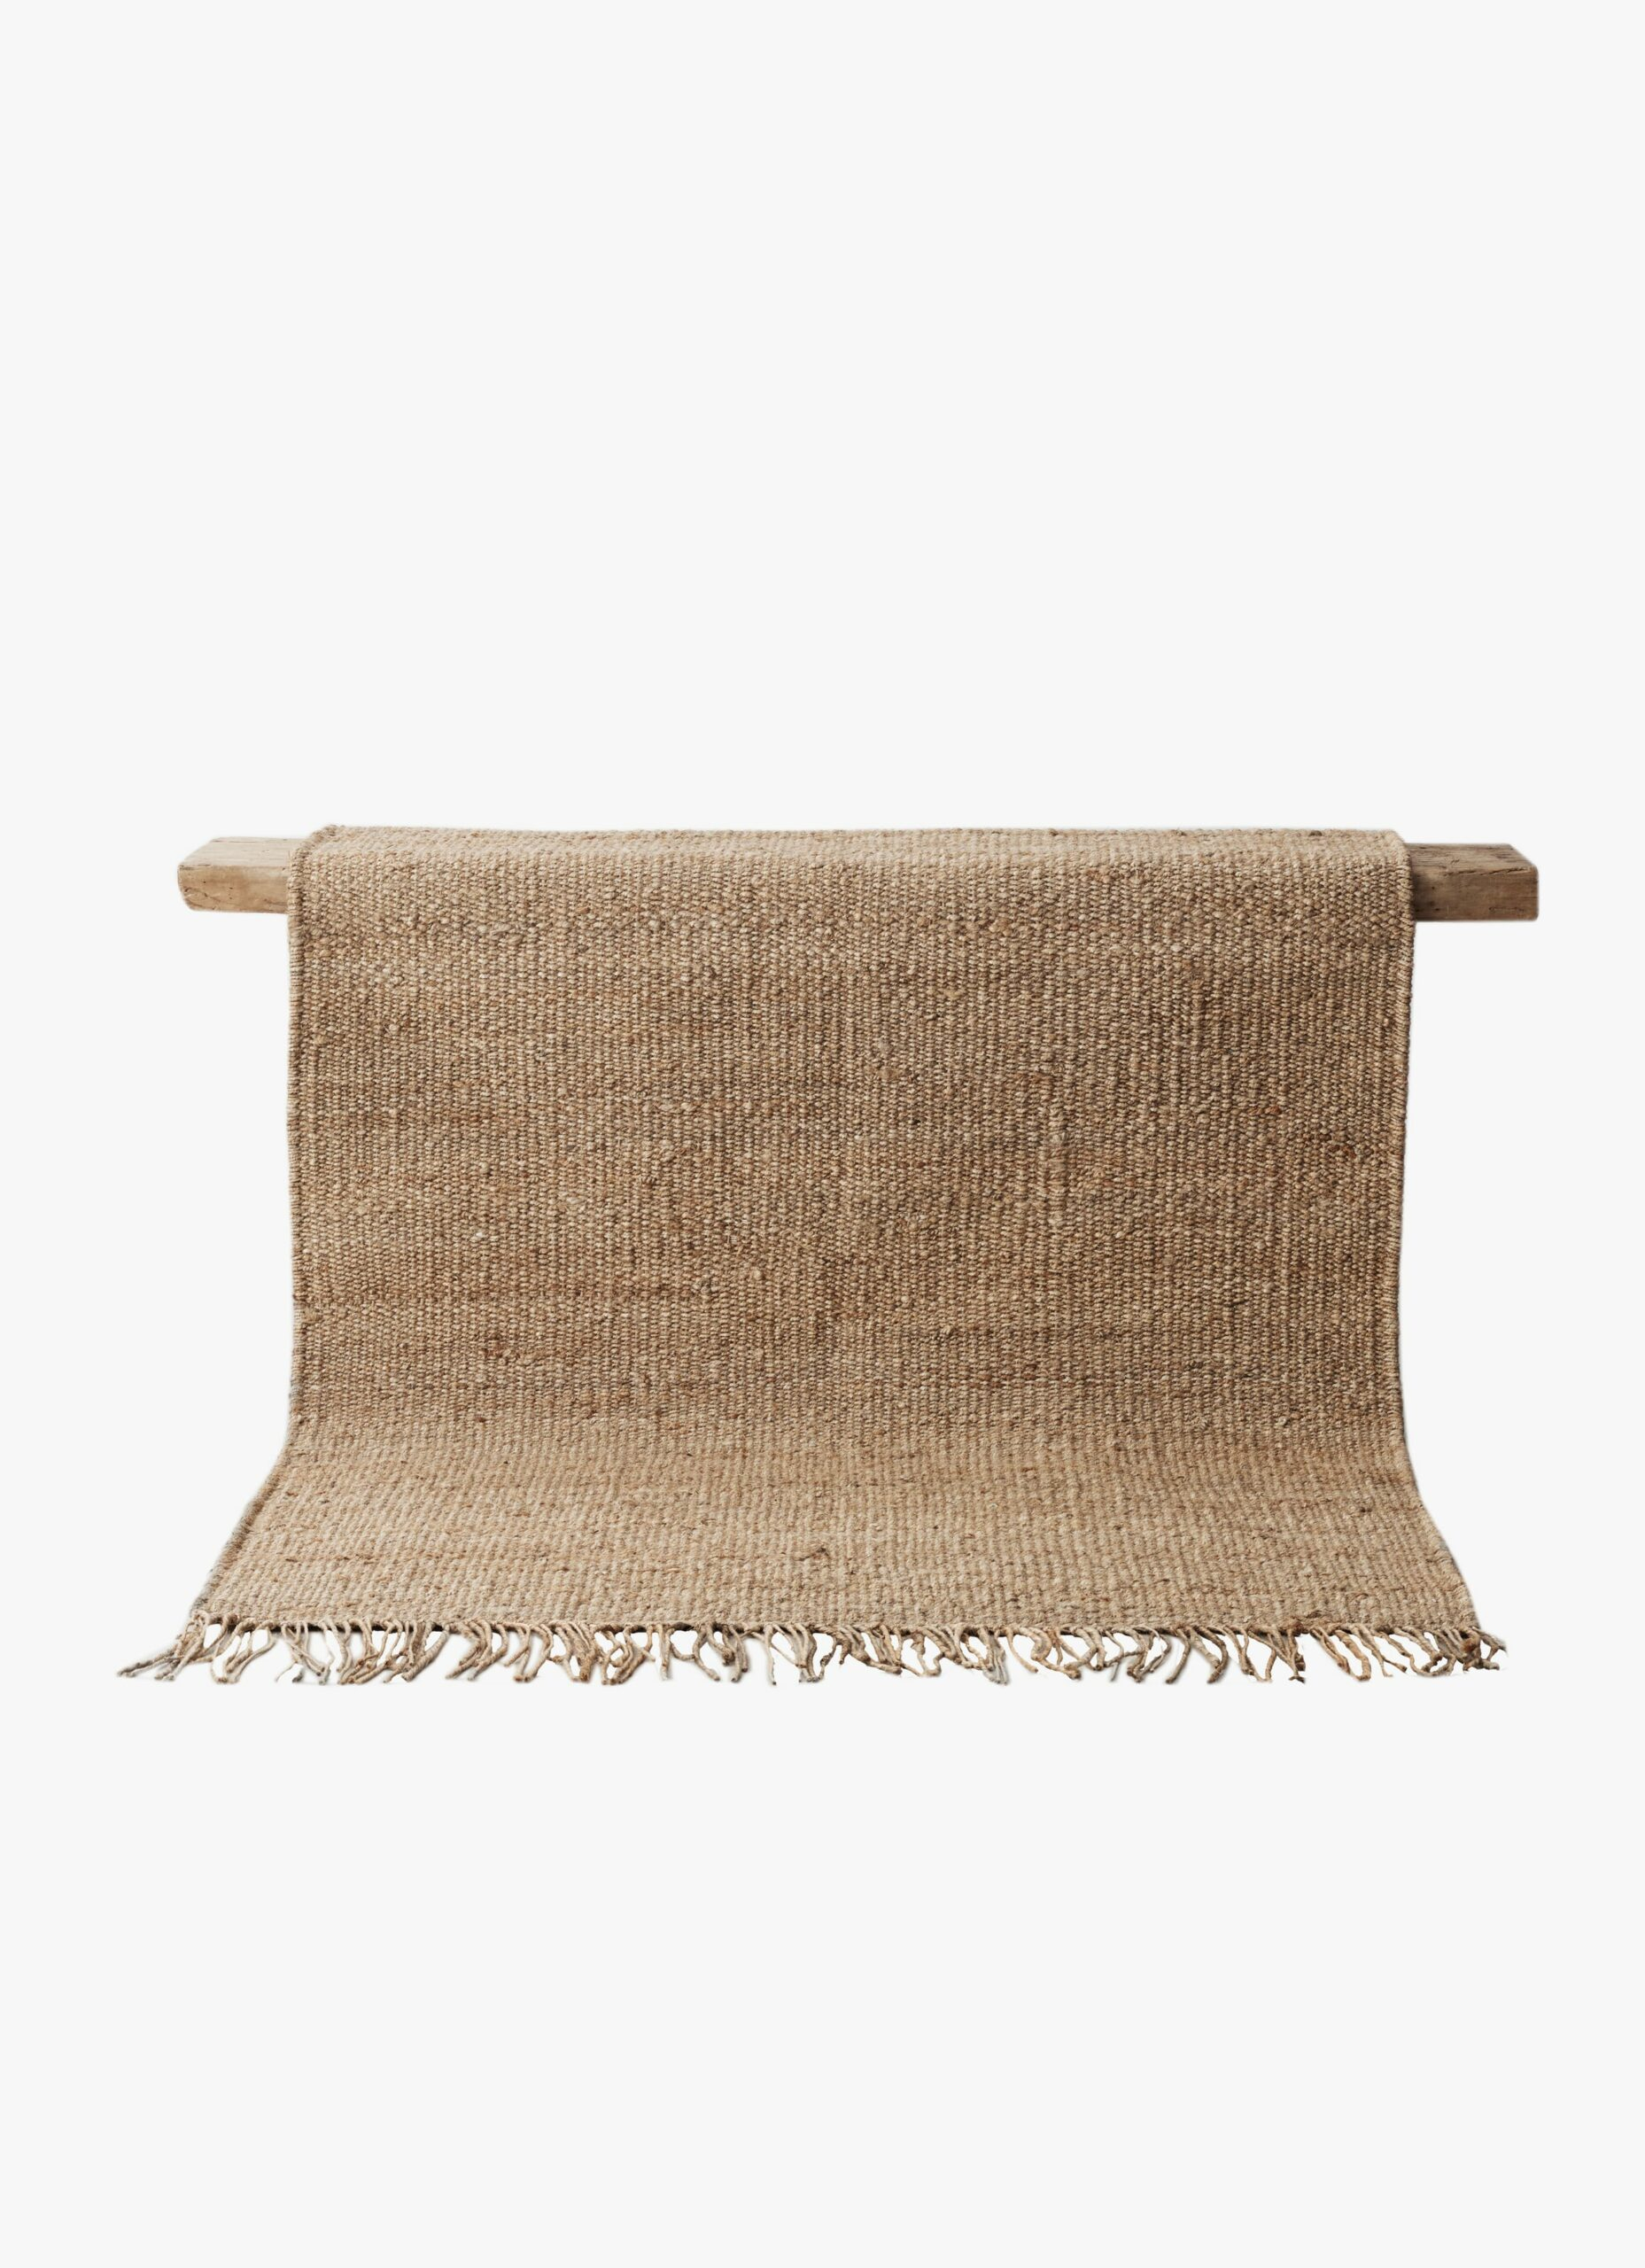 Tell Me More - Hemp Rug with fringes - natural - 140 x 200 cm